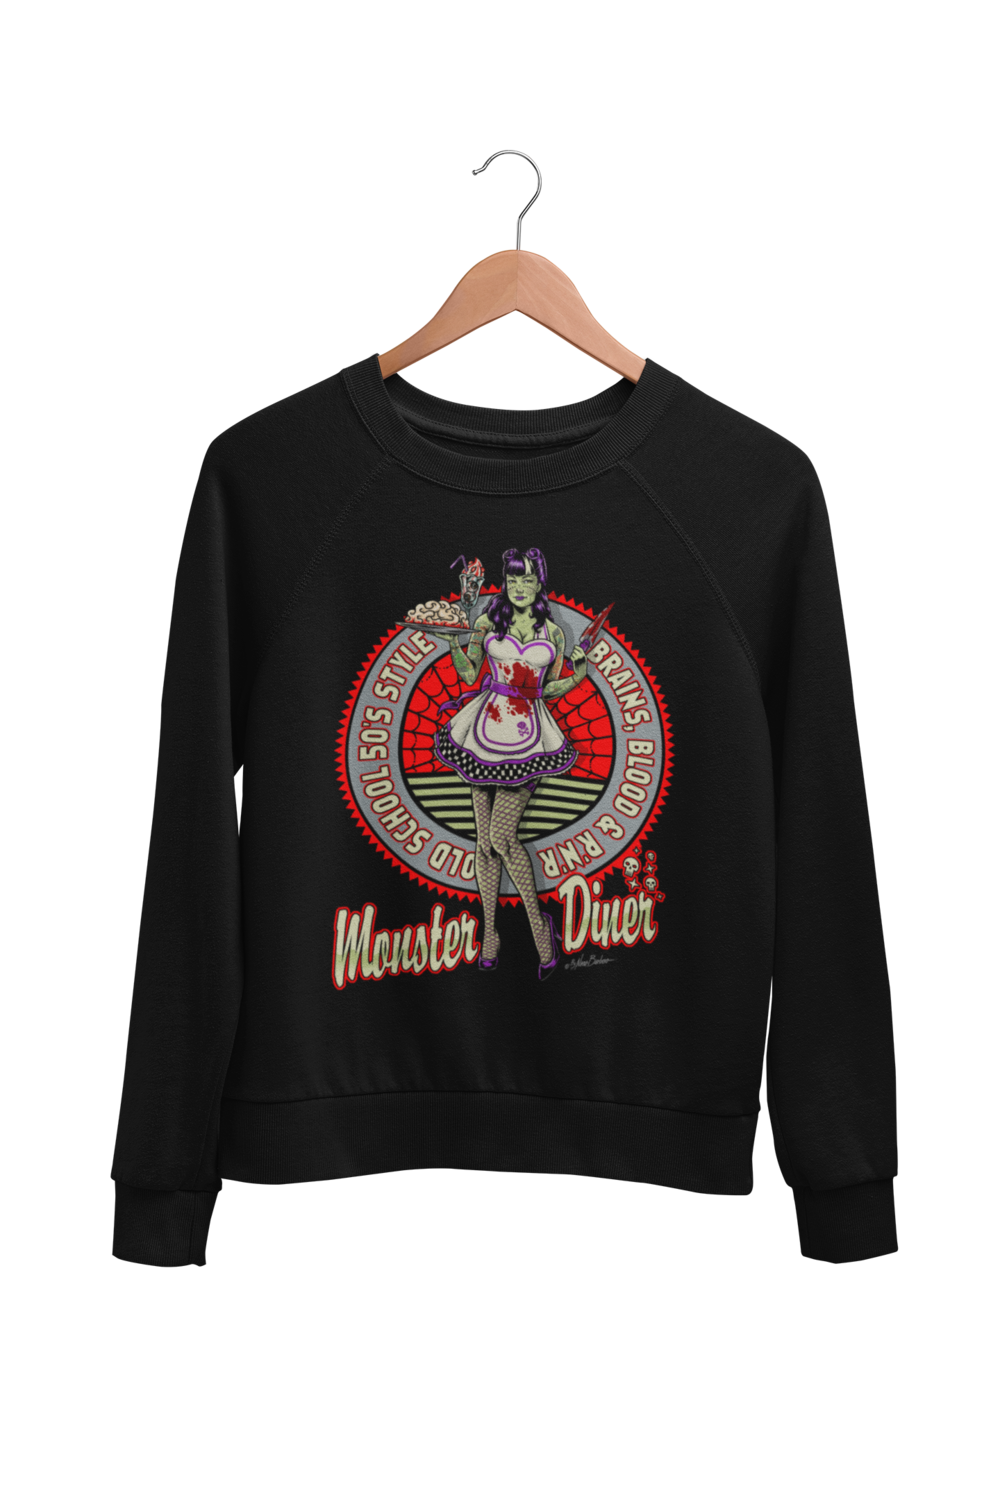 MONSTER DINER SWEATSHIRT UNISEX BY NANO BARBERO